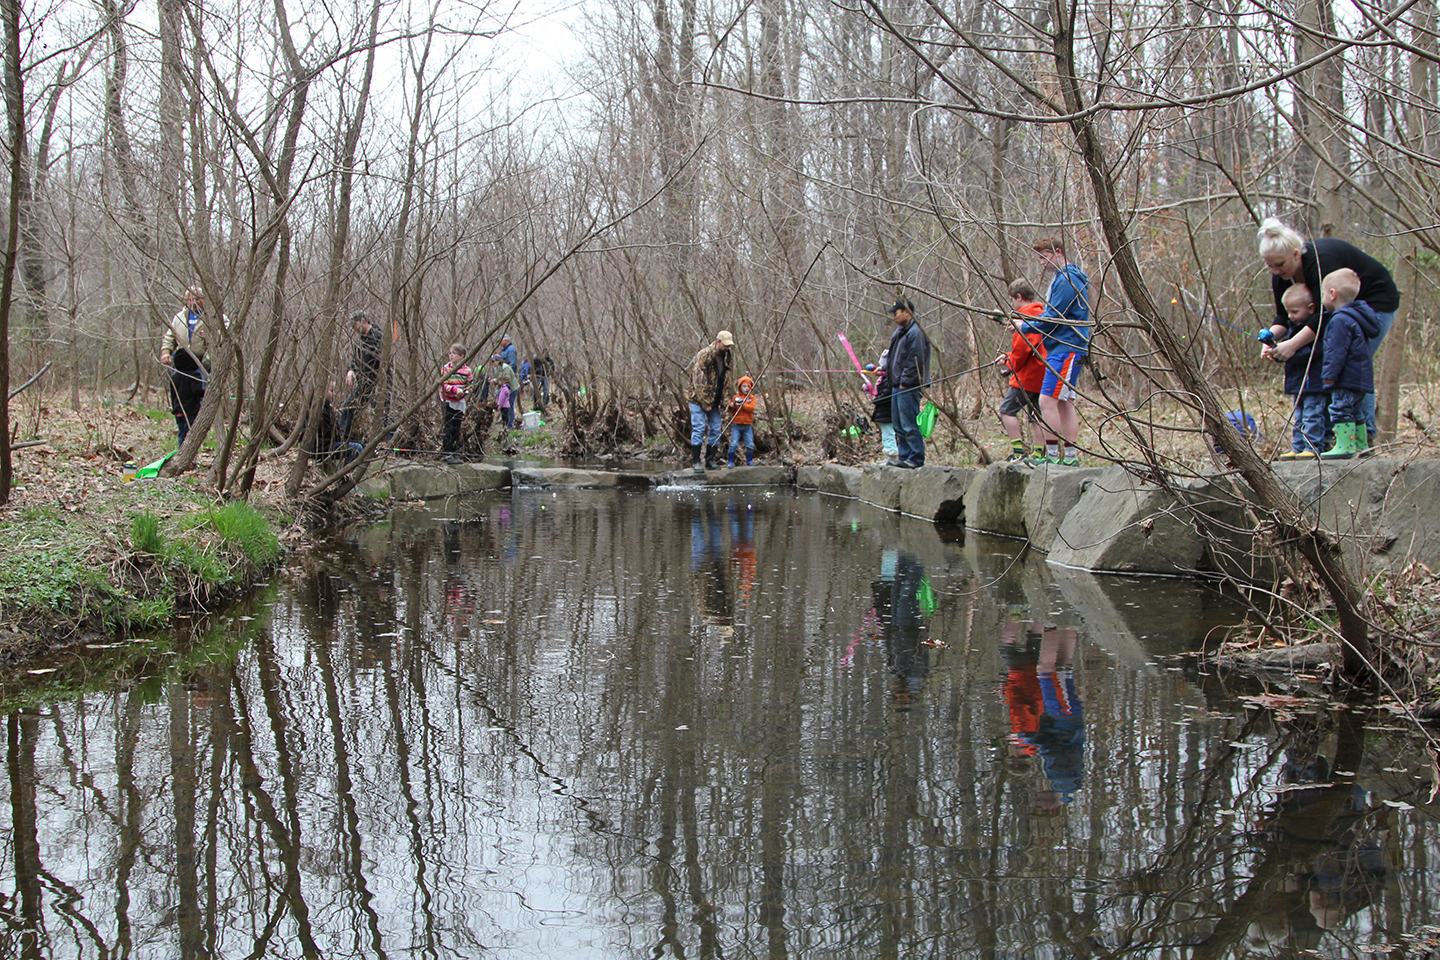 Anglers along Snakeden Branch in 2016, seven years after restoration